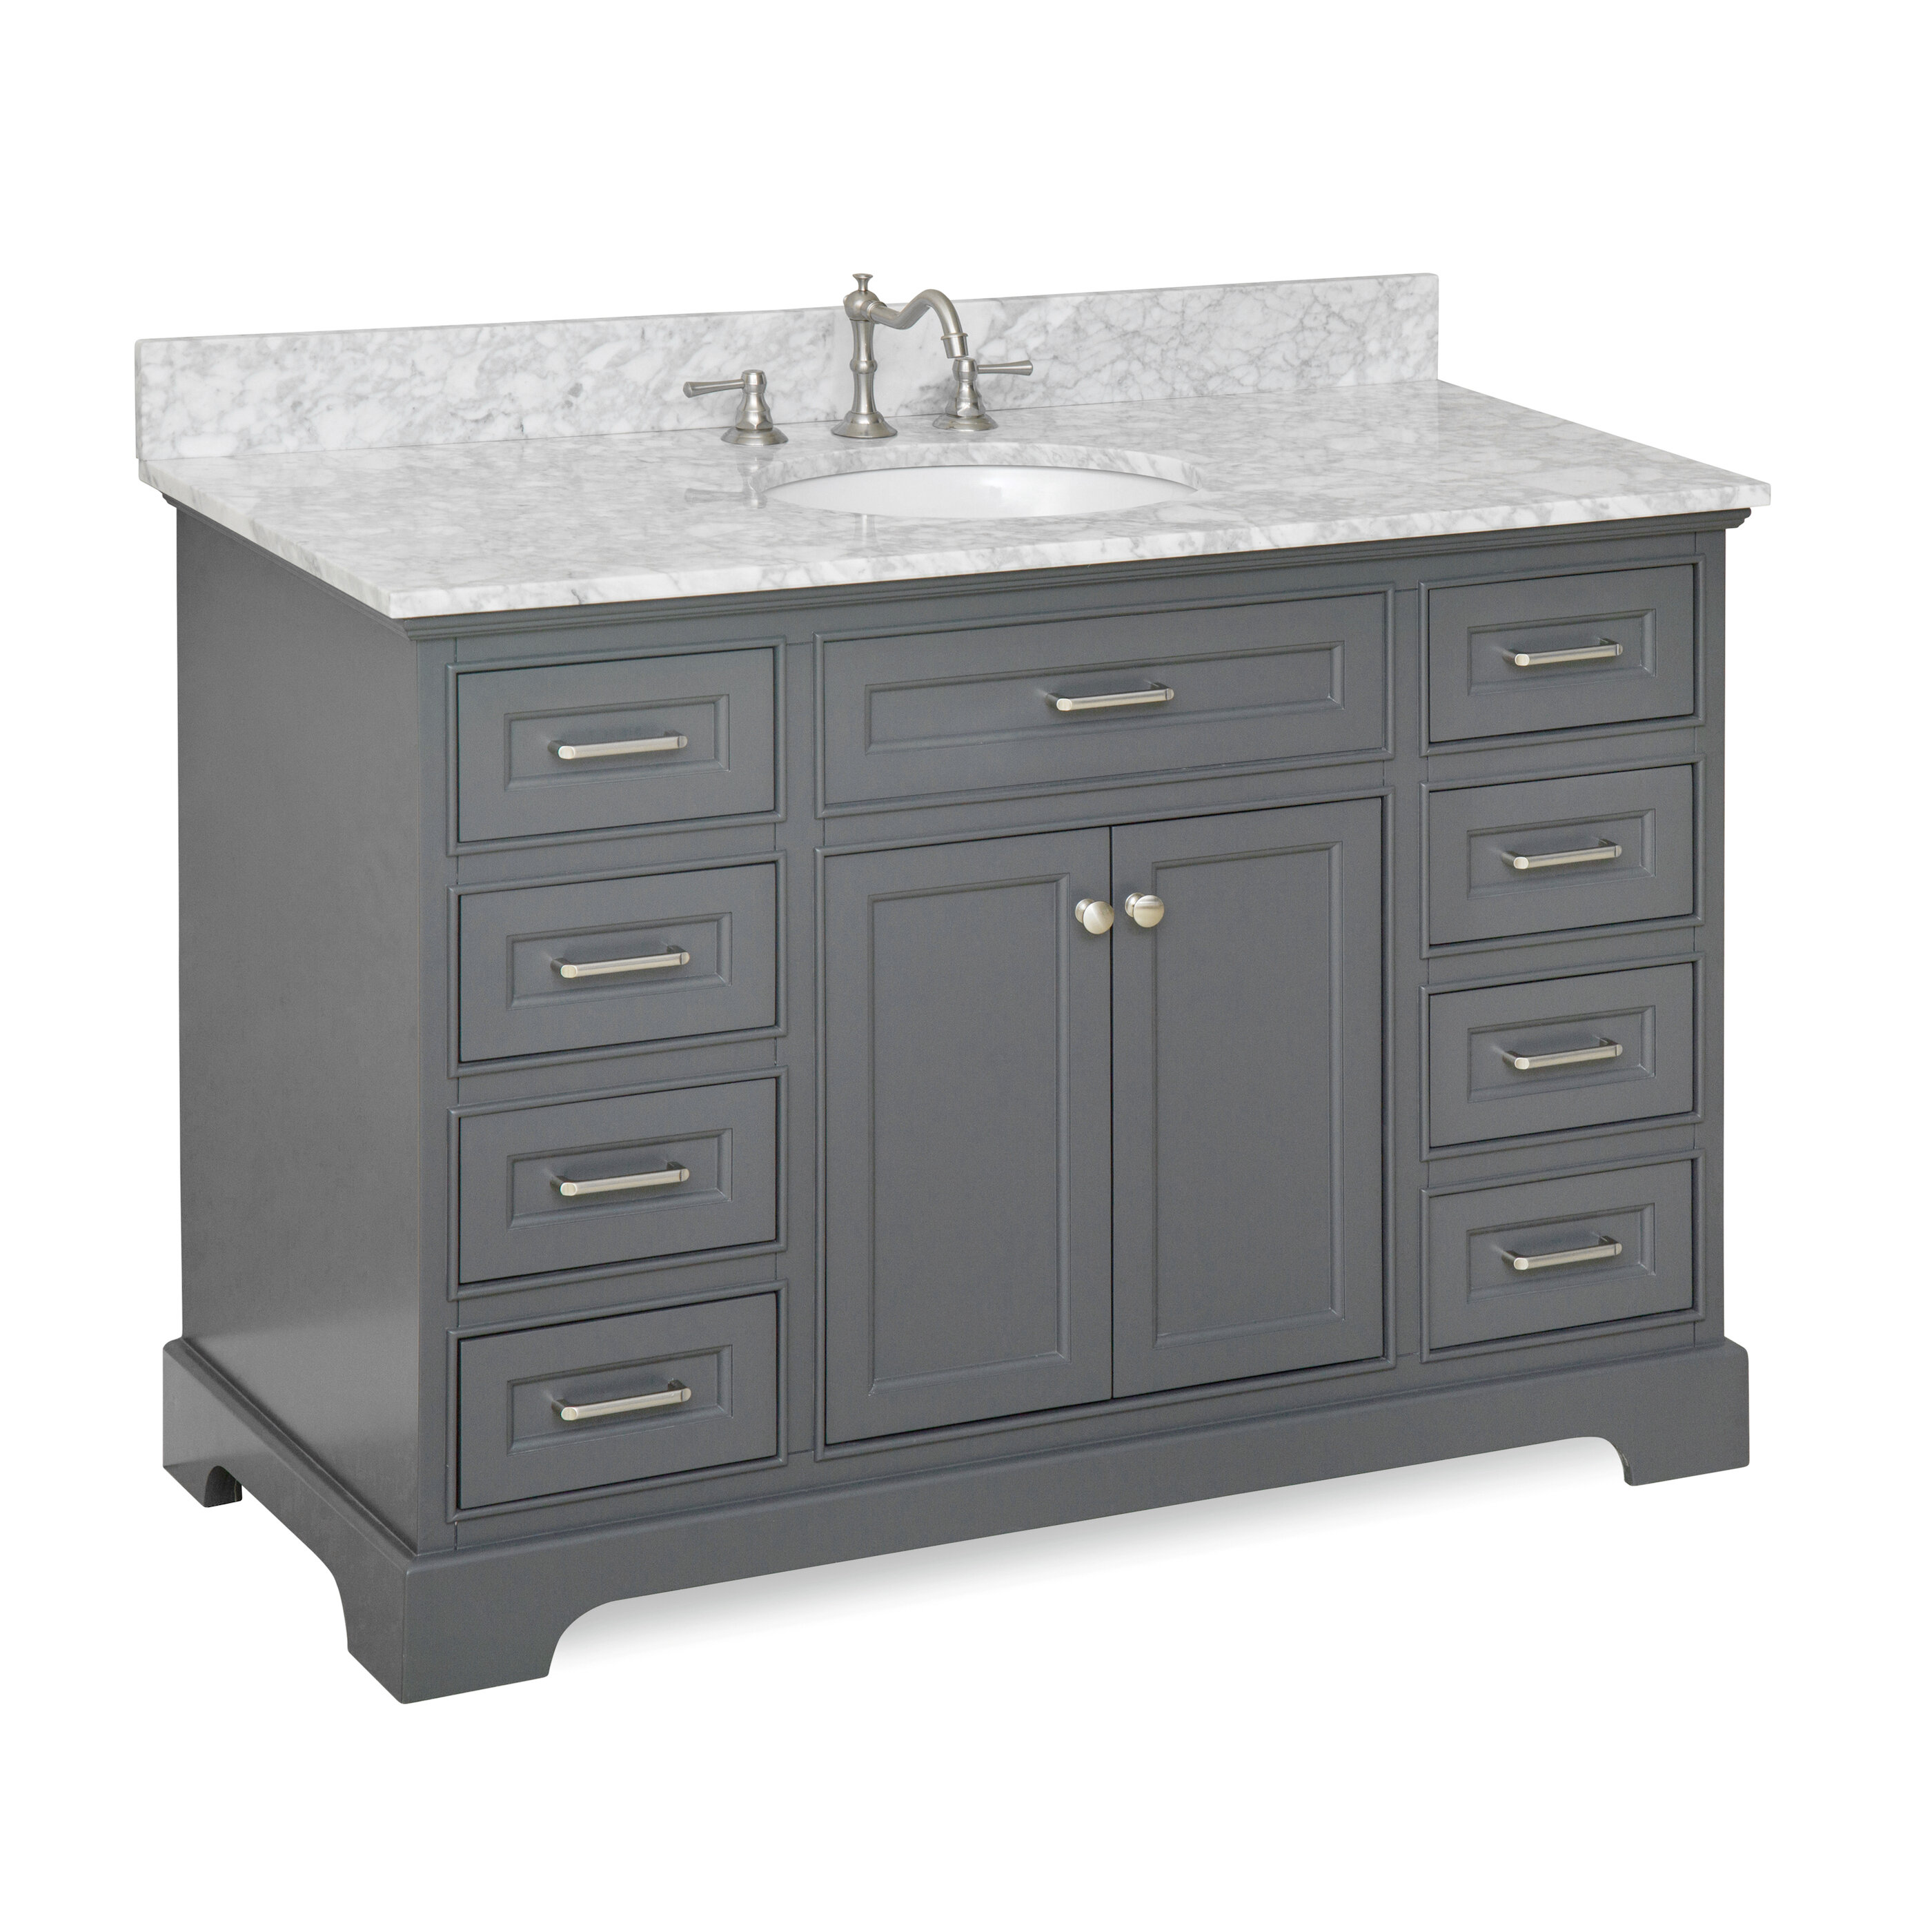 KBC Aria Single Bathroom Vanity Set Reviews Wayfair - Manufactured home bathroom vanity